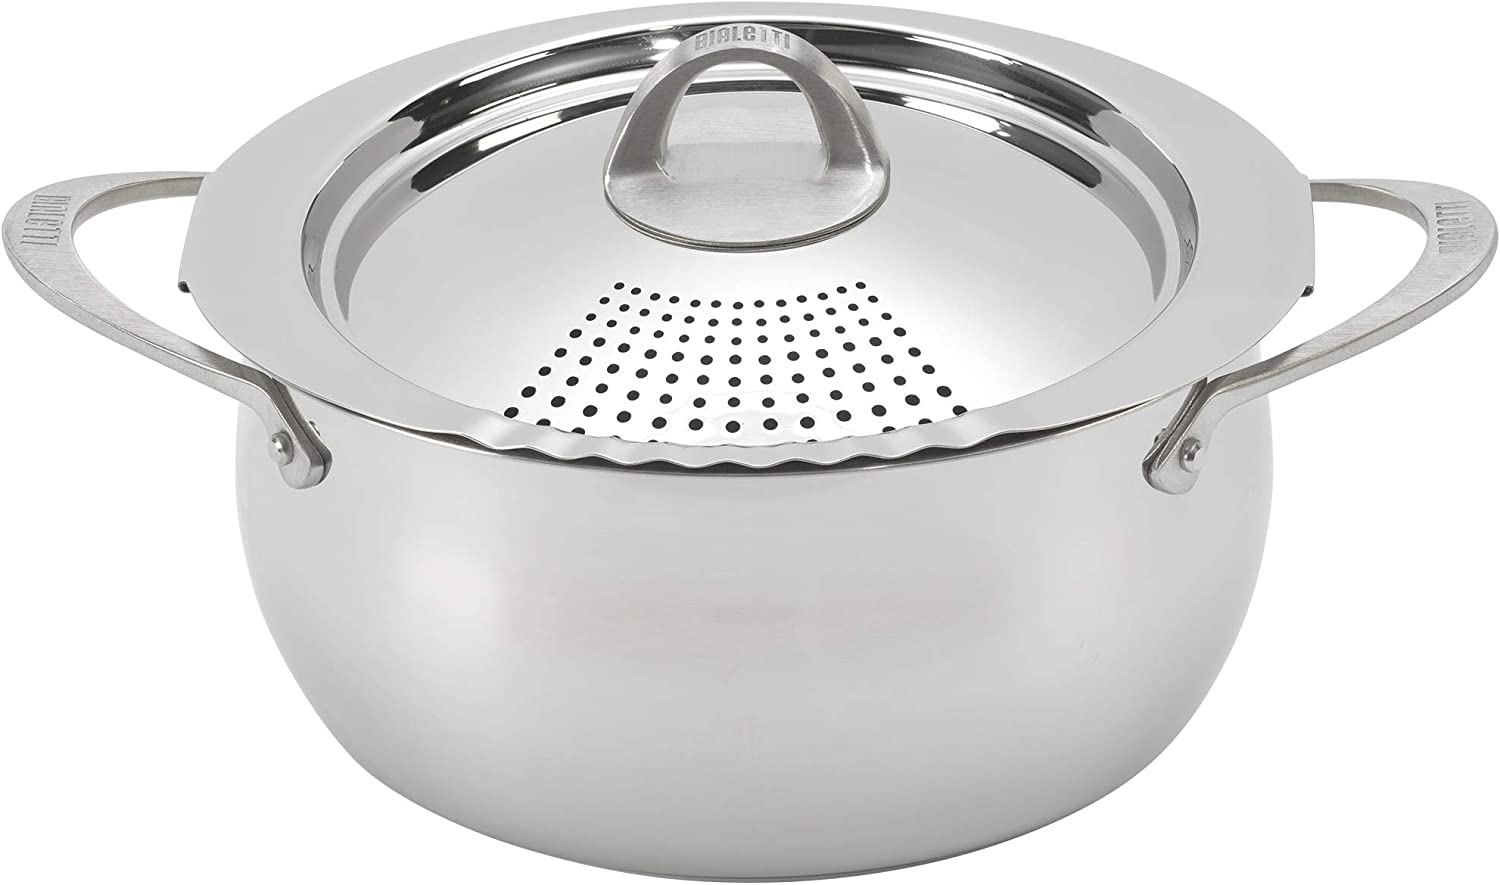 Bialetti 07593 Oval 6 Quart Multi-Pot with Strainer Lid, whole pasta, corn, lobster, Stainless Steel